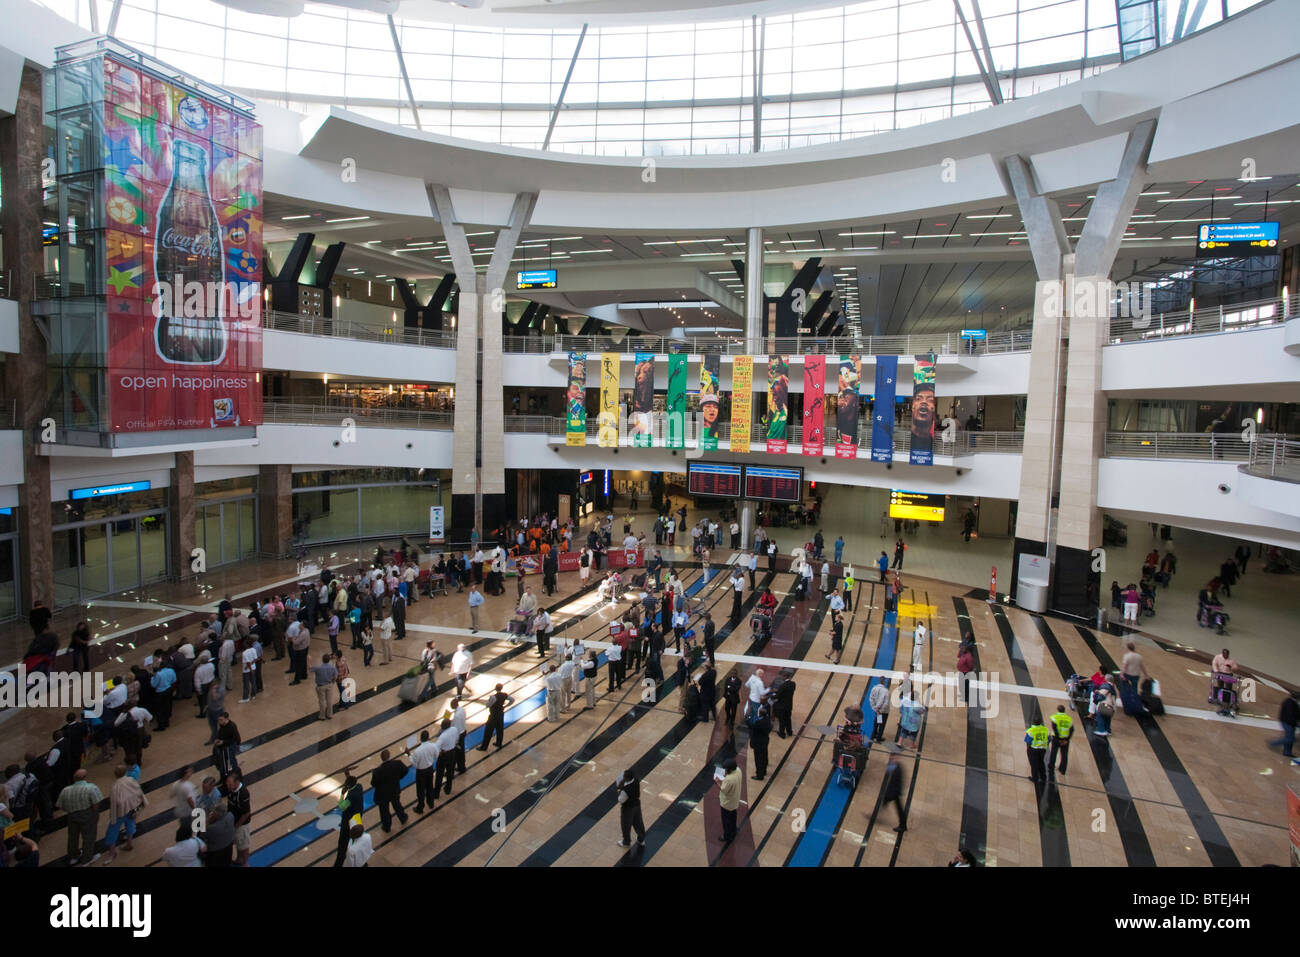 The arrivals hall at Oliver Tambo airport in Johannesburg - Stock Image